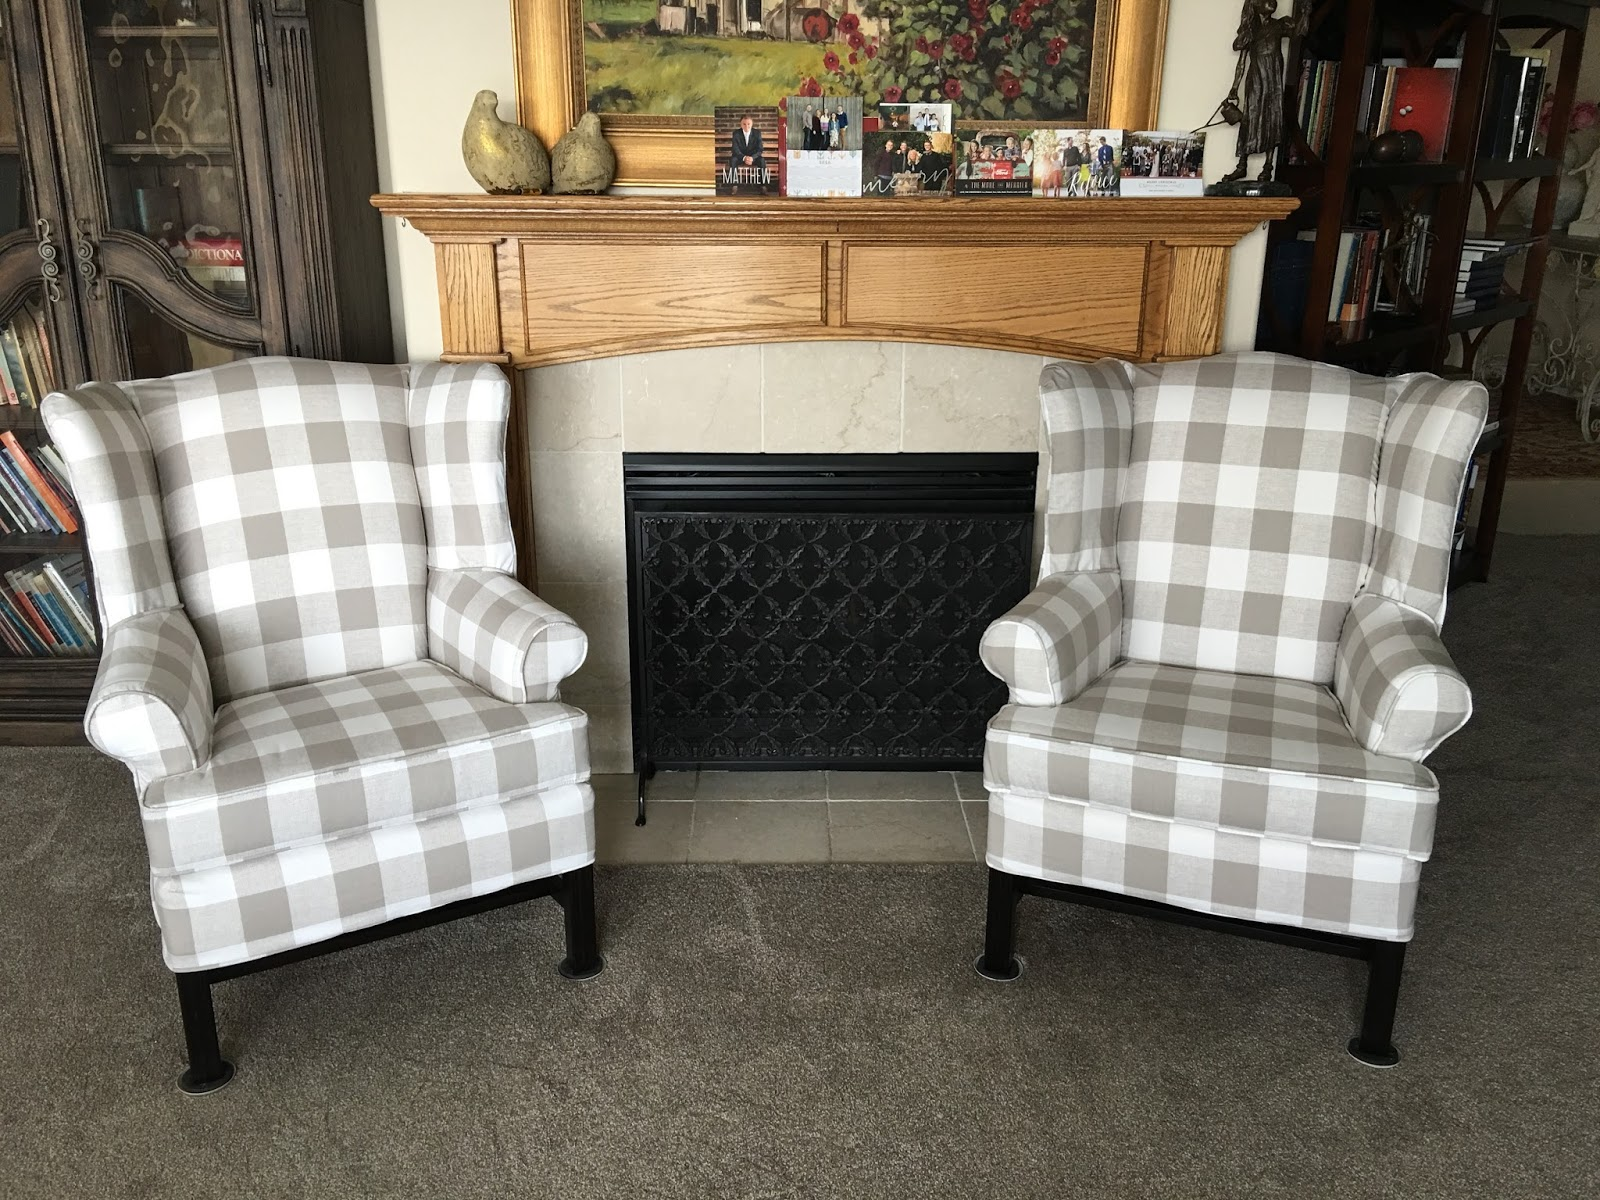 Buffalo Check Sofa Cover 70 Inch Cushion The Sewing Nerd Slipcovers March 2016